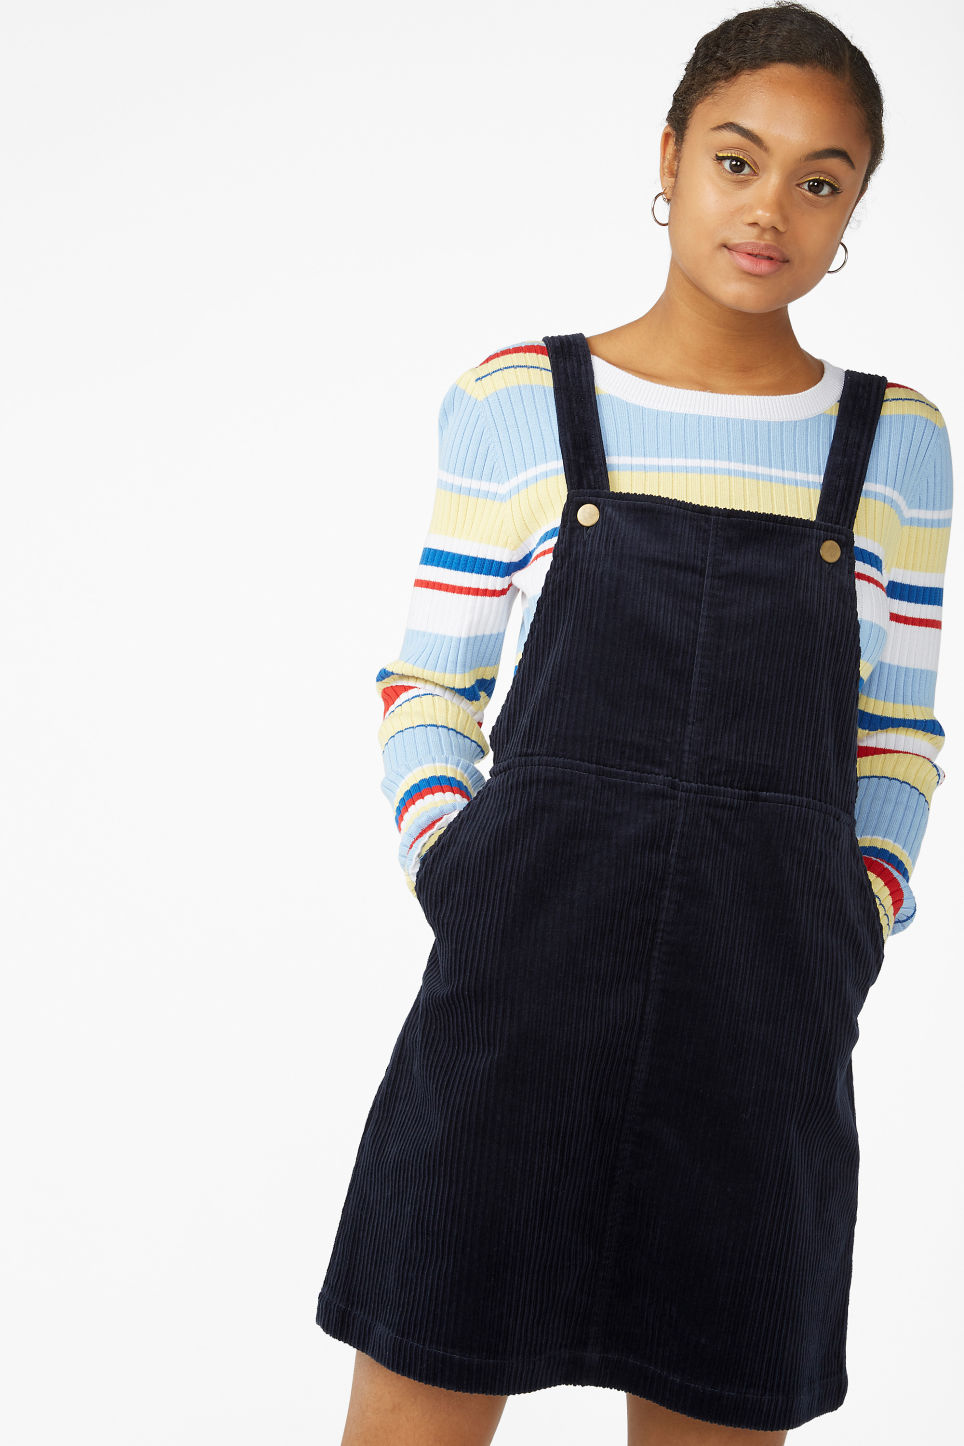 fantastic savings meticulous dyeing processes sophisticated technologies Corduroy dress - Midnight blue - Dresses - Monki